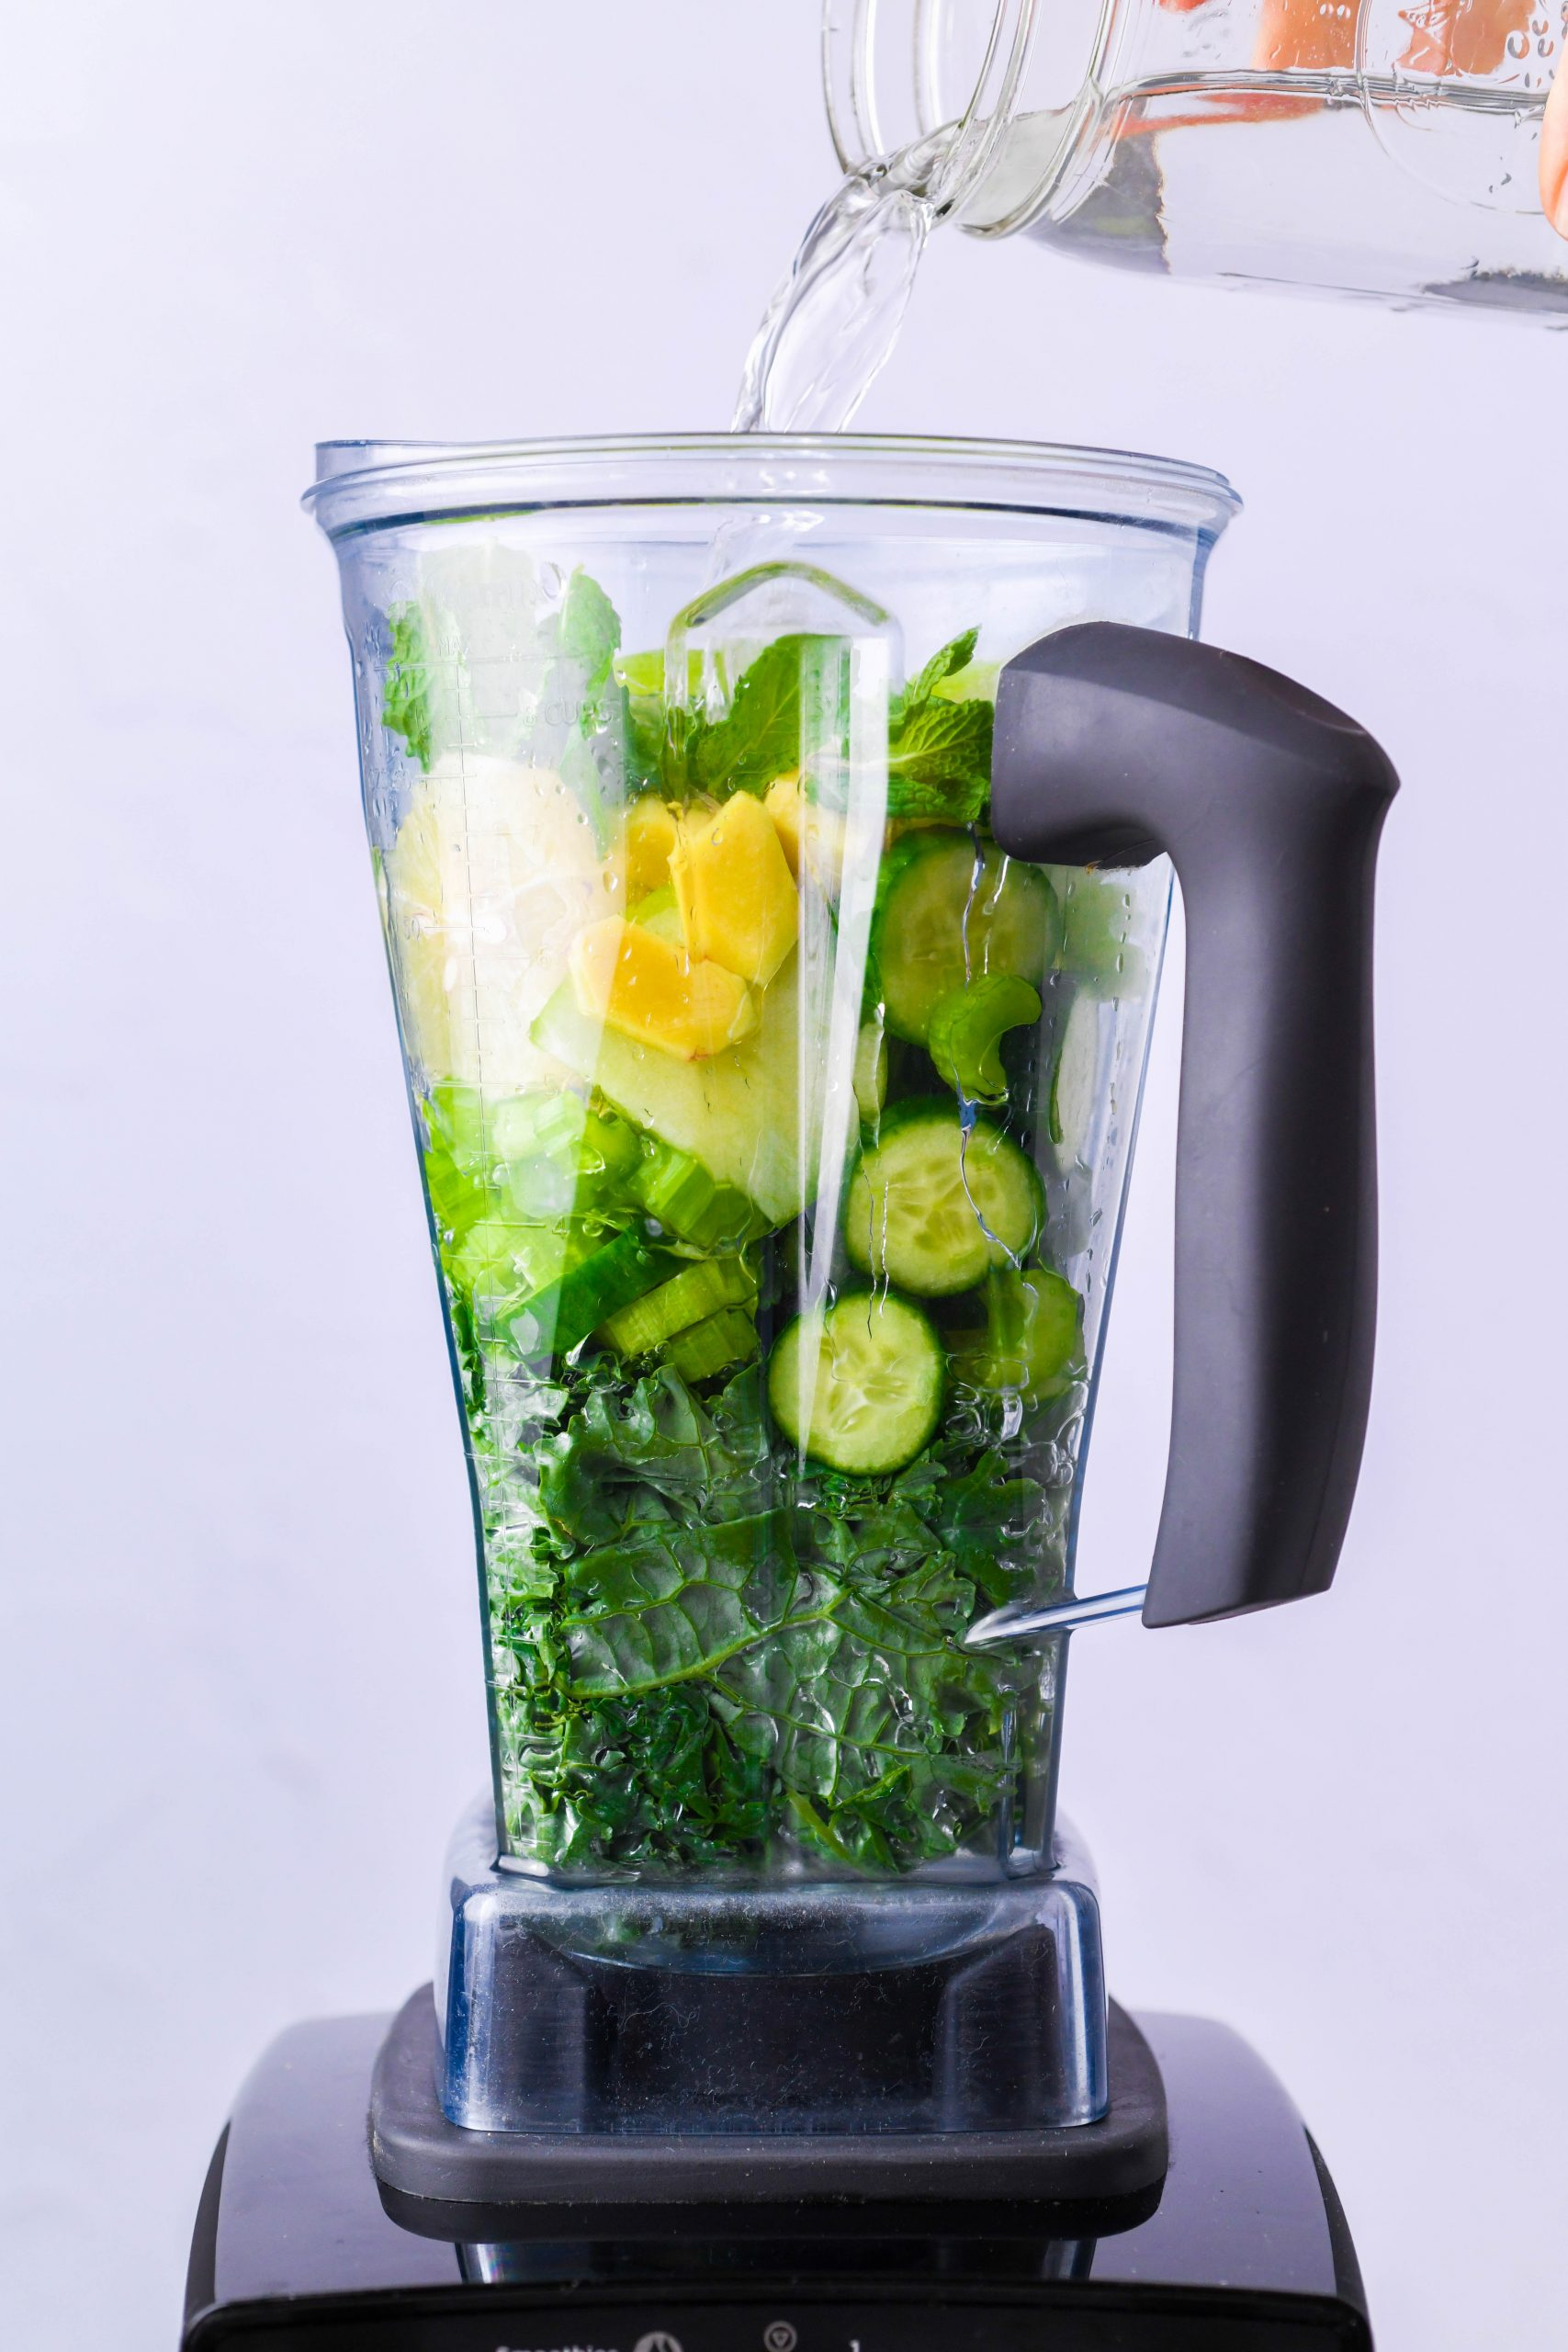 Image of pouring blended green juice into a strainer positioned over a large bowl to strain out the solids.